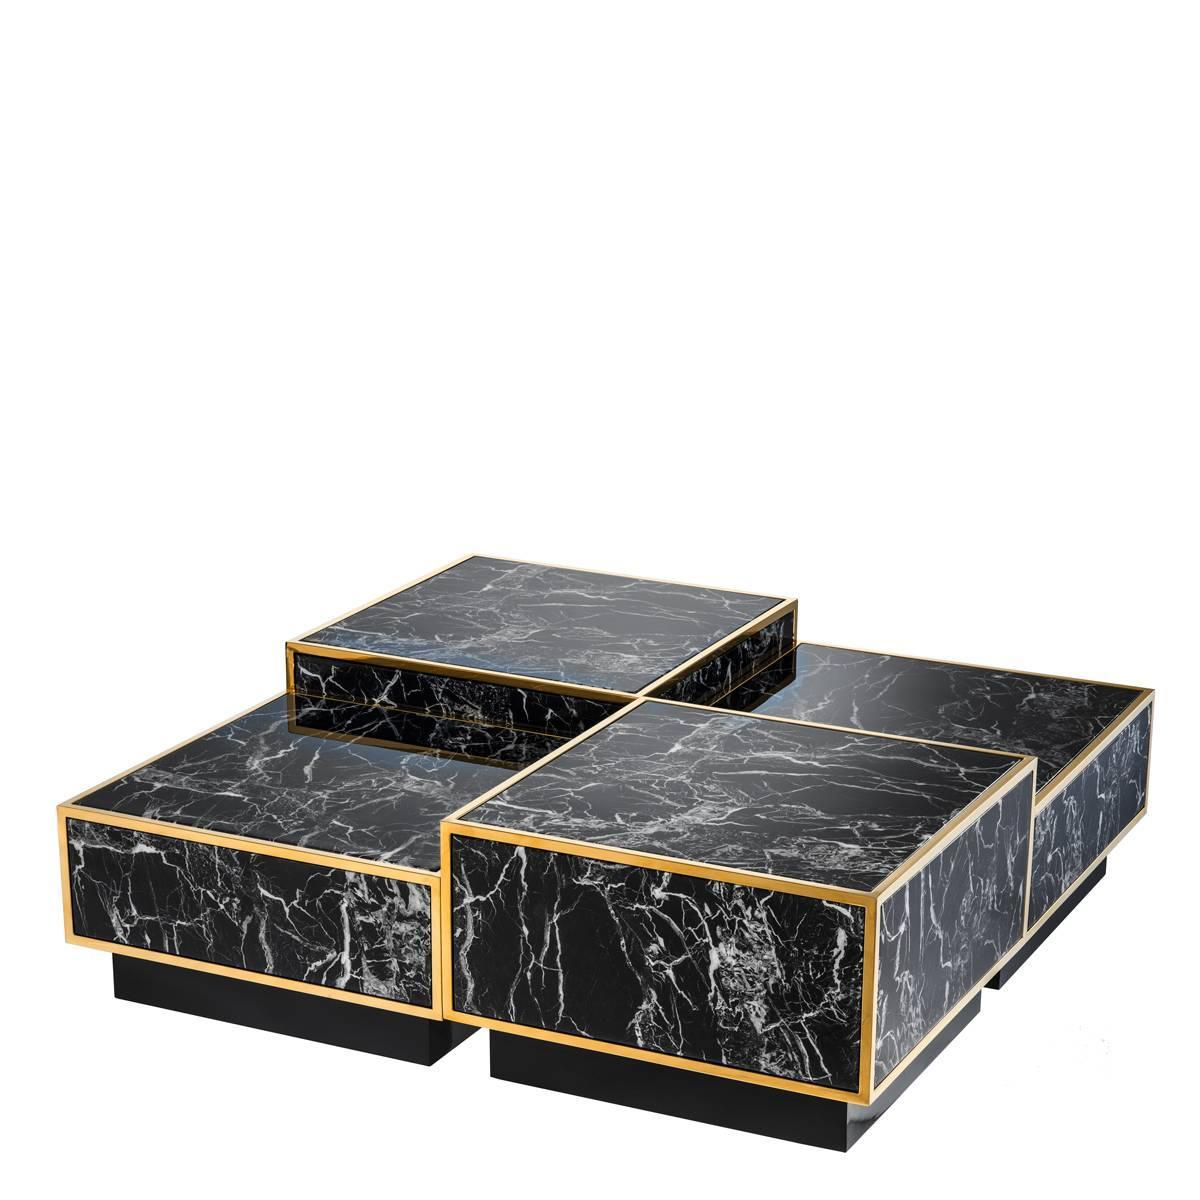 Found Square Coffee Table In Black Marble And Black Steel: Floors Set Of Four Coffee Table Square Tables Gold Finish